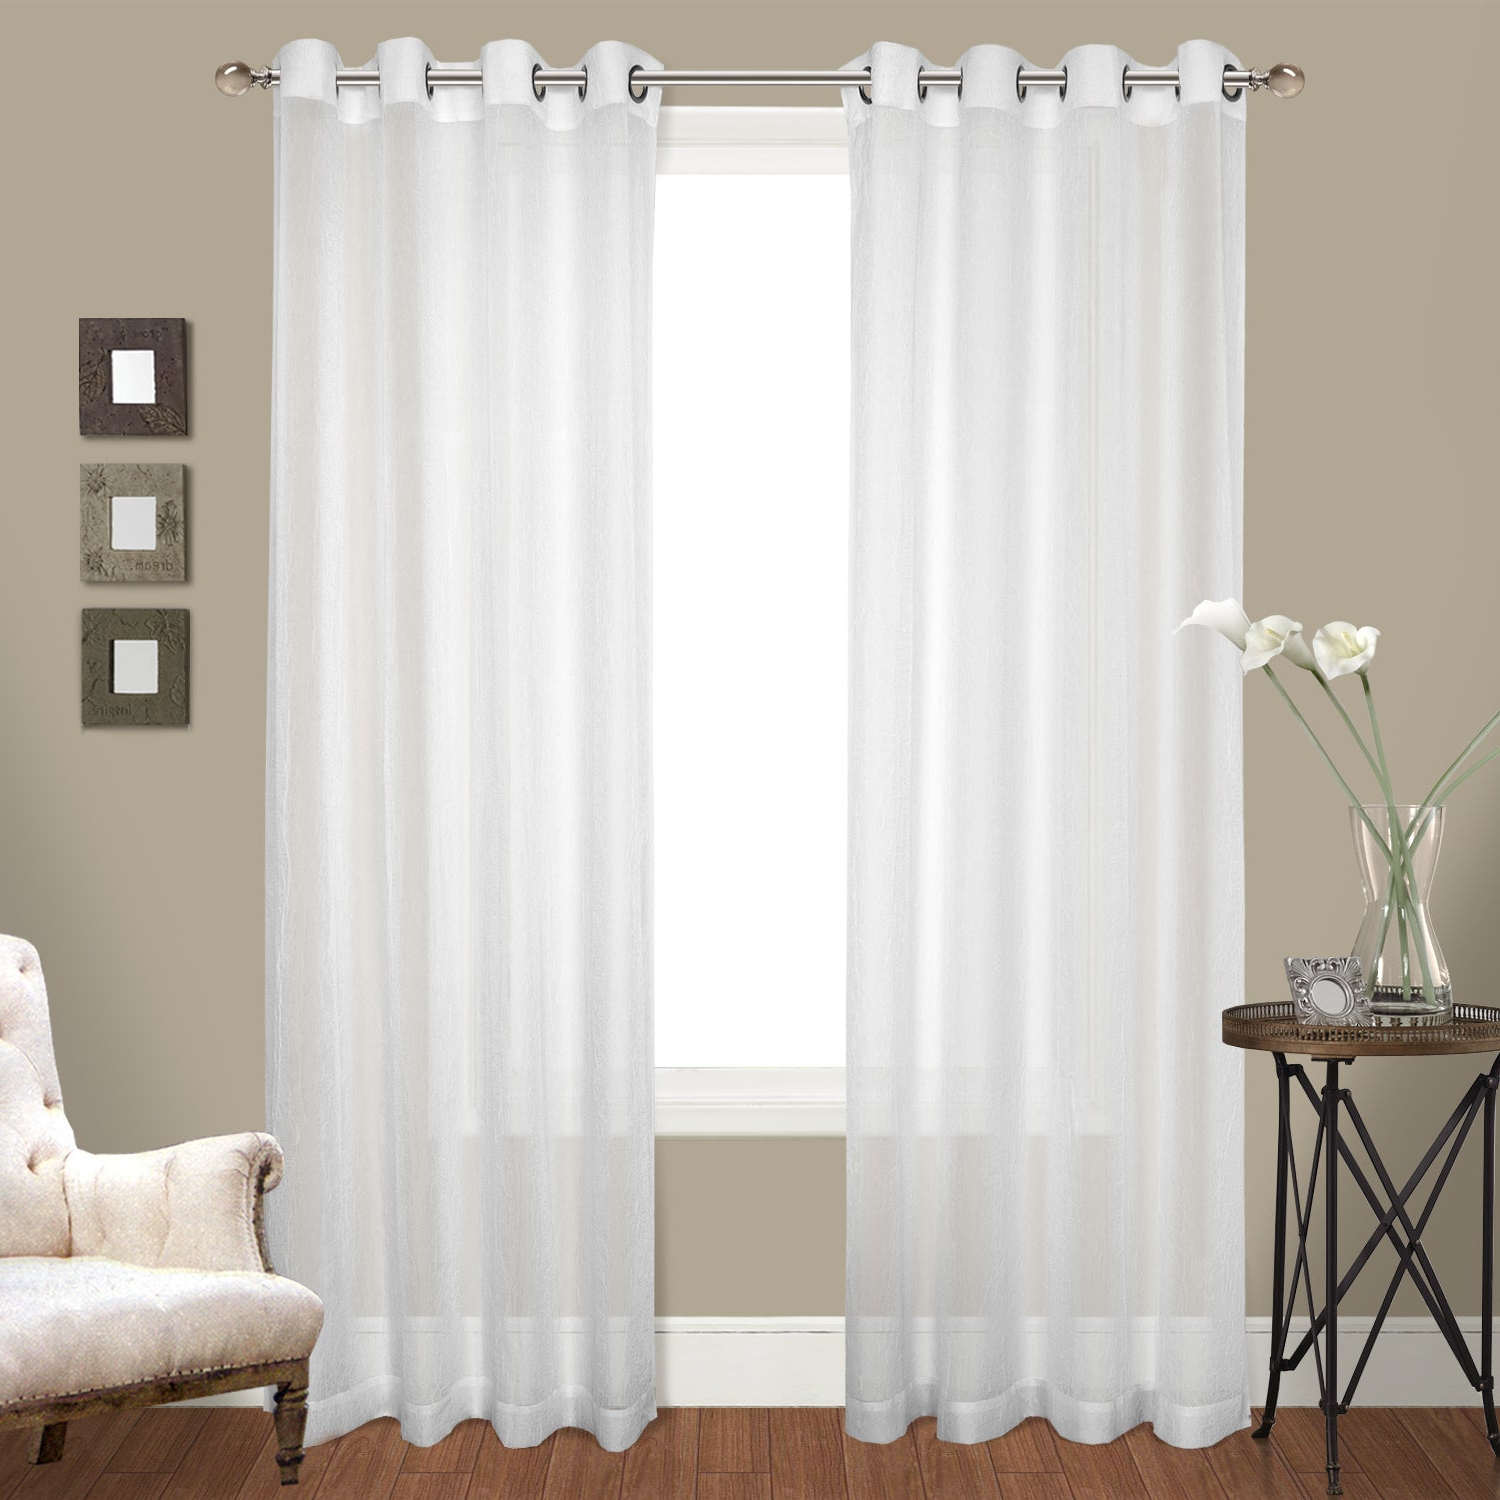 Most Recently Released Luxury Collection Monte Carlo Sheer Curtain Panel Pairs Pertaining To Luxury Collection Venetian Sheer Curtain Panel Pair (View 5 of 20)